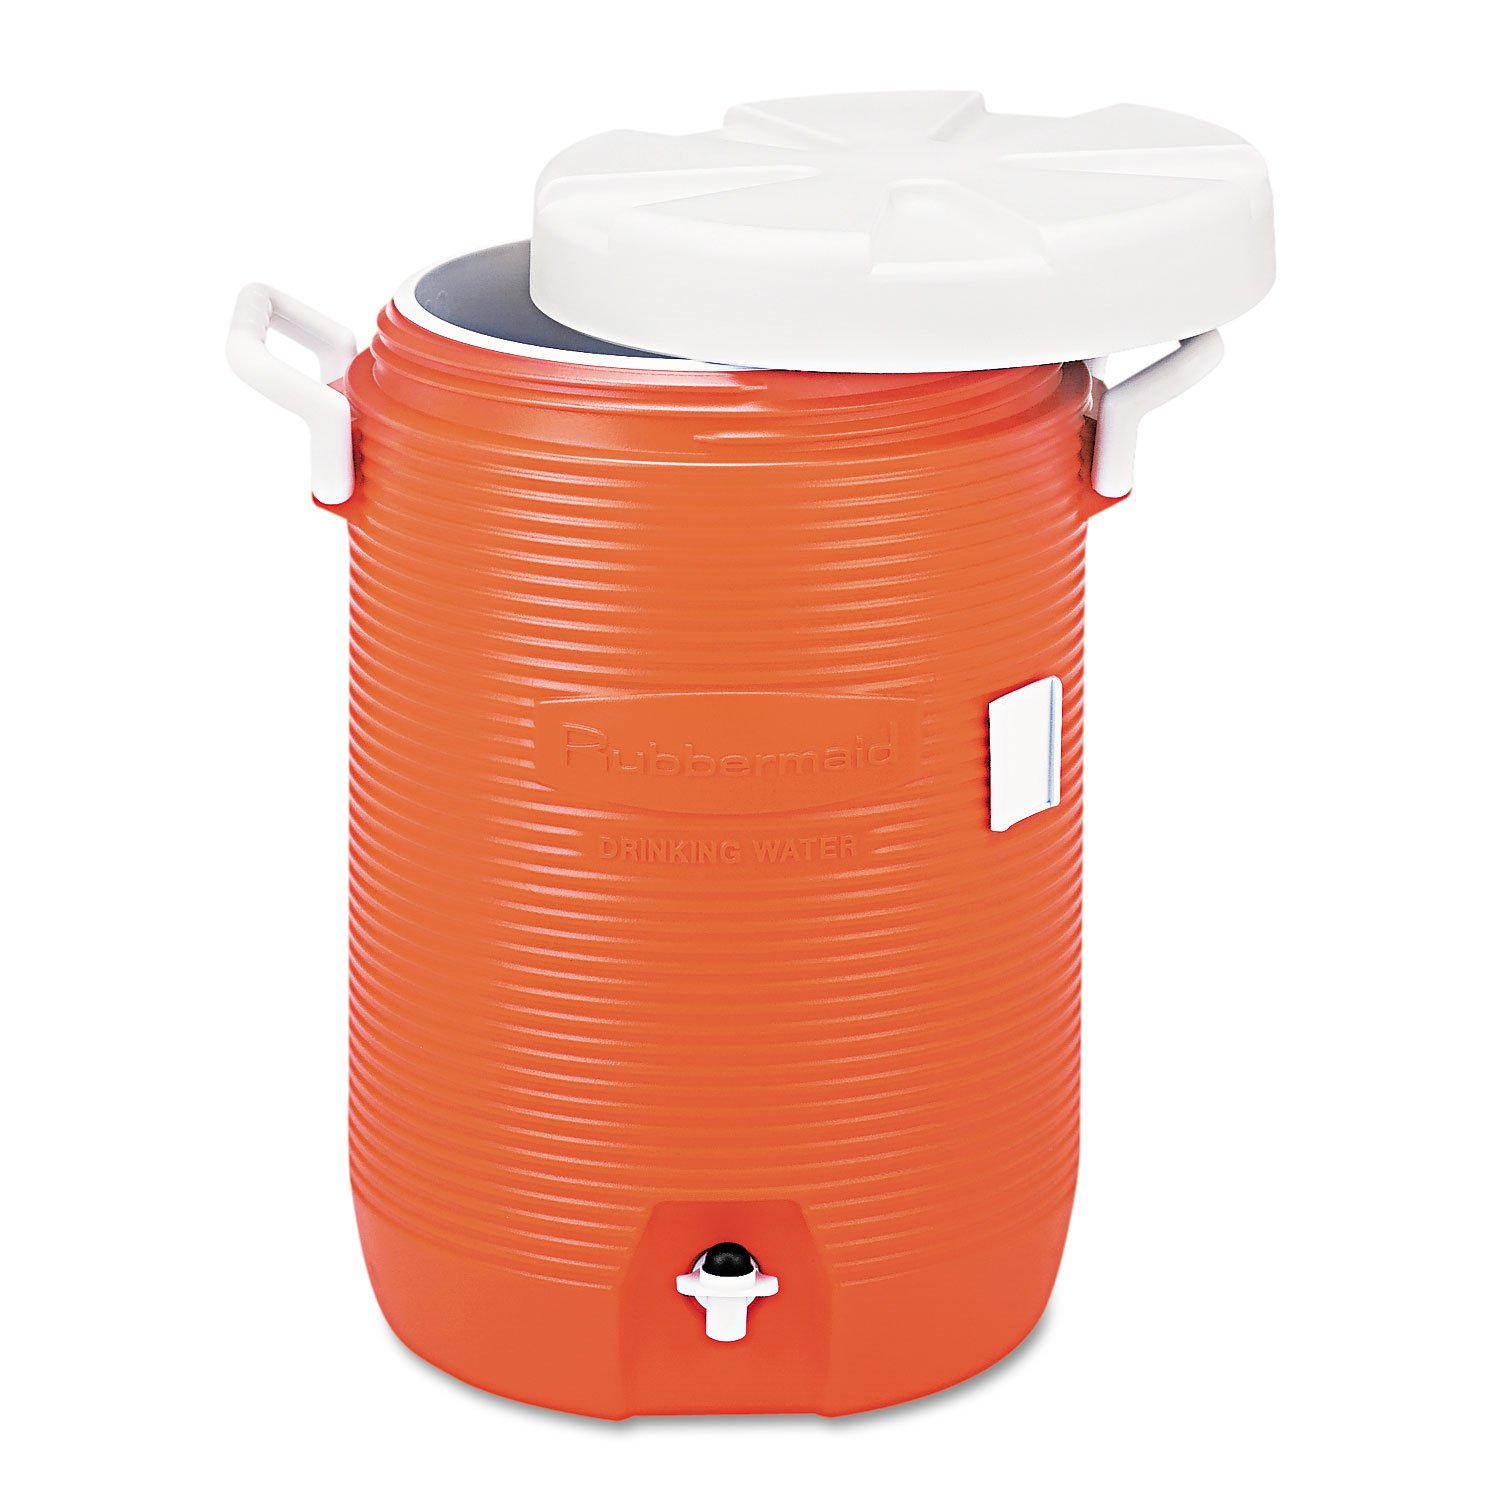 Rubbermaid Home Products 1840999 Water Coolers, 5 gal, Orange